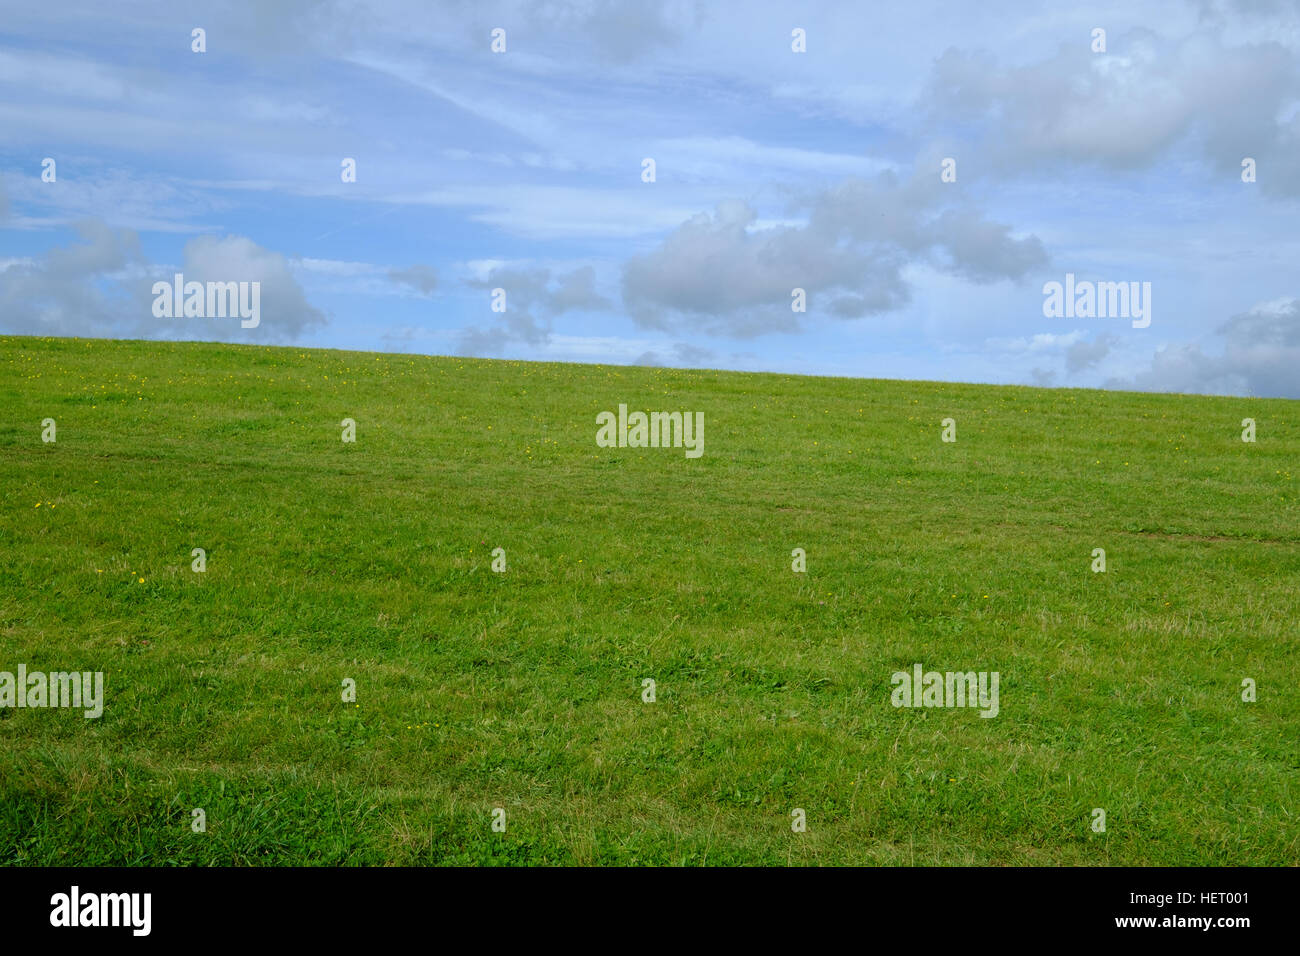 Green field and blue sky - Stock Image